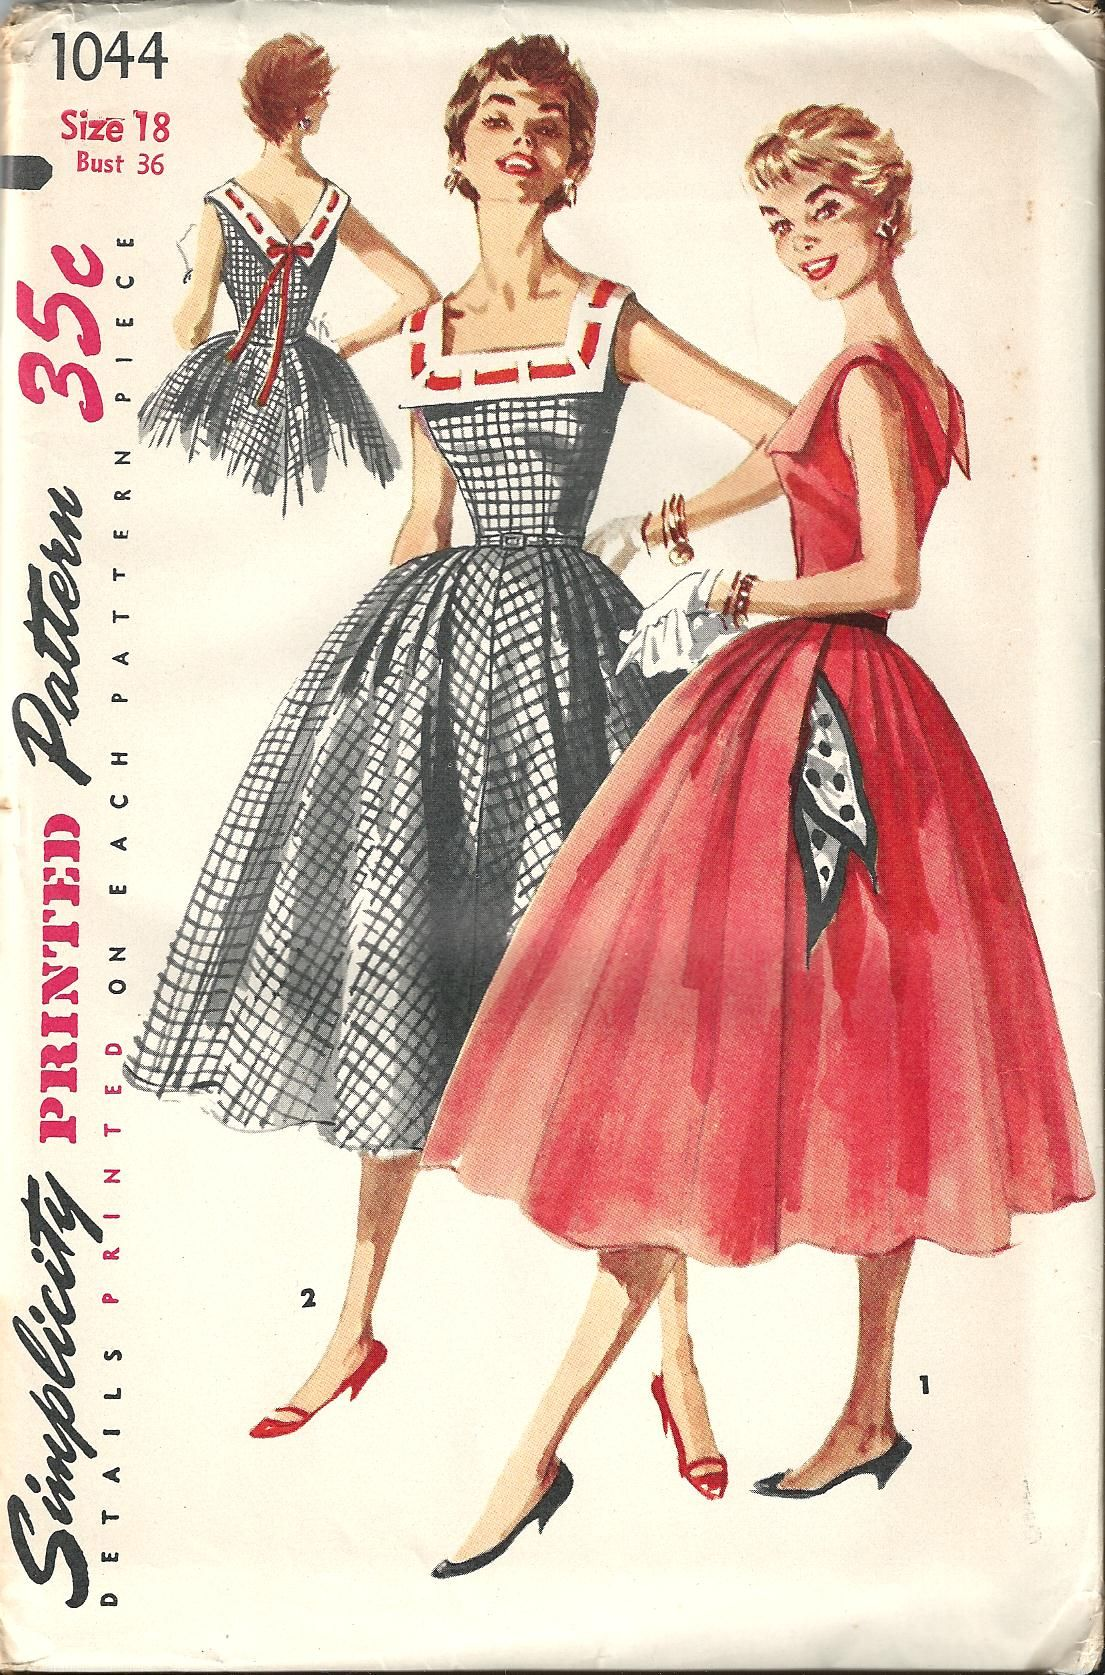 Vintage Sewing Pattern Dress Simplicity 1044 | Fashion decades ...